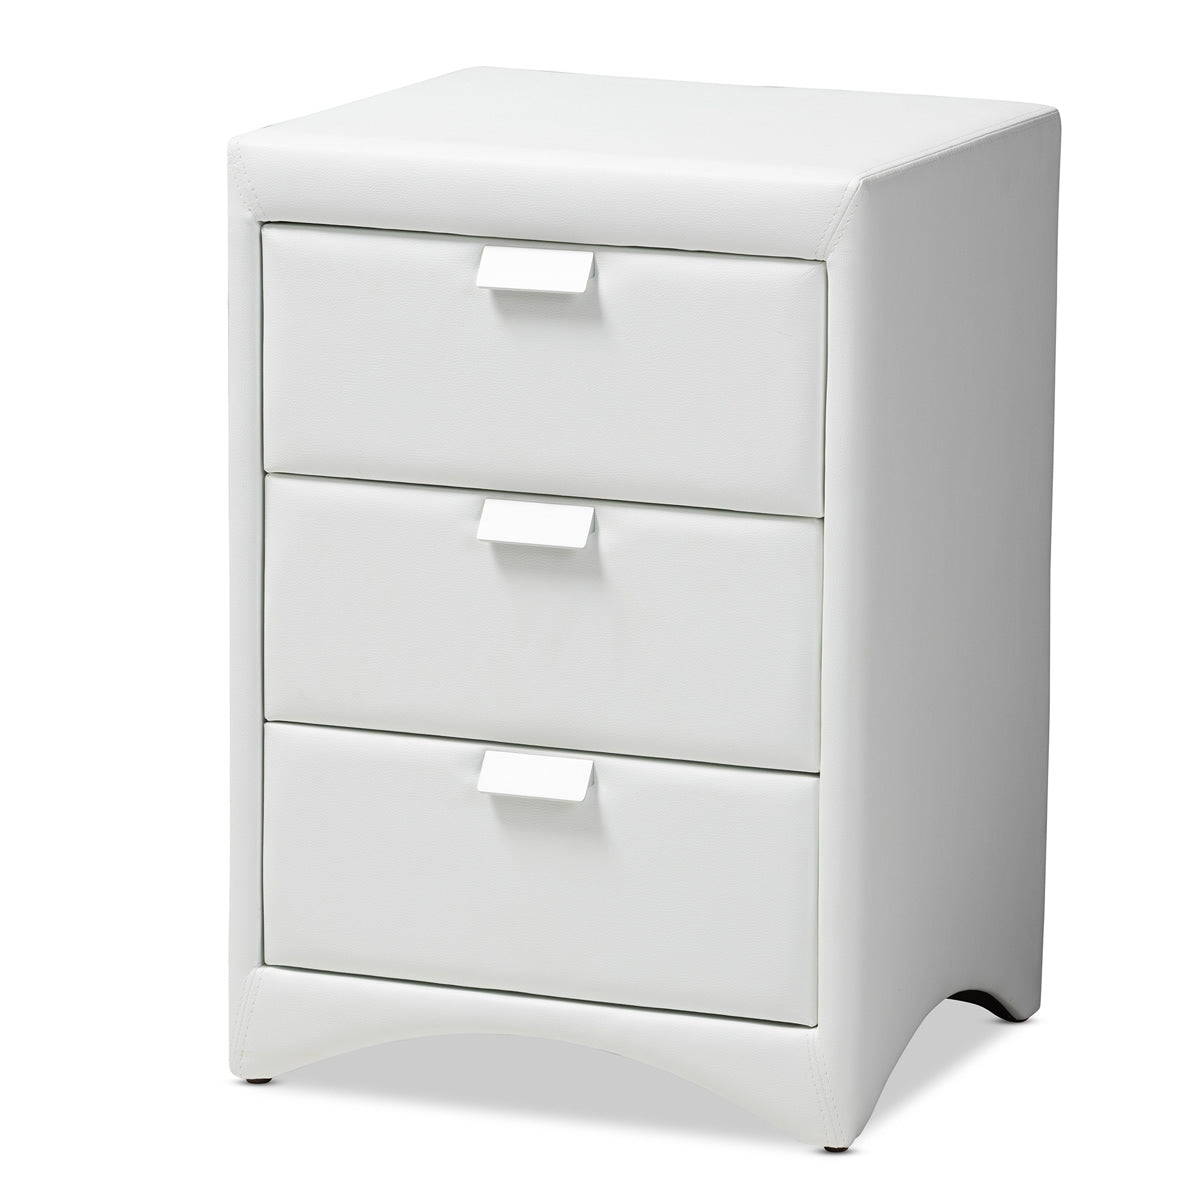 Baxton Studio Talia Modern and Contemporary White Faux Leather Upholstered 3-Drawer Nightstand Baxton Studio-nightstands-Minimal And Modern - 1